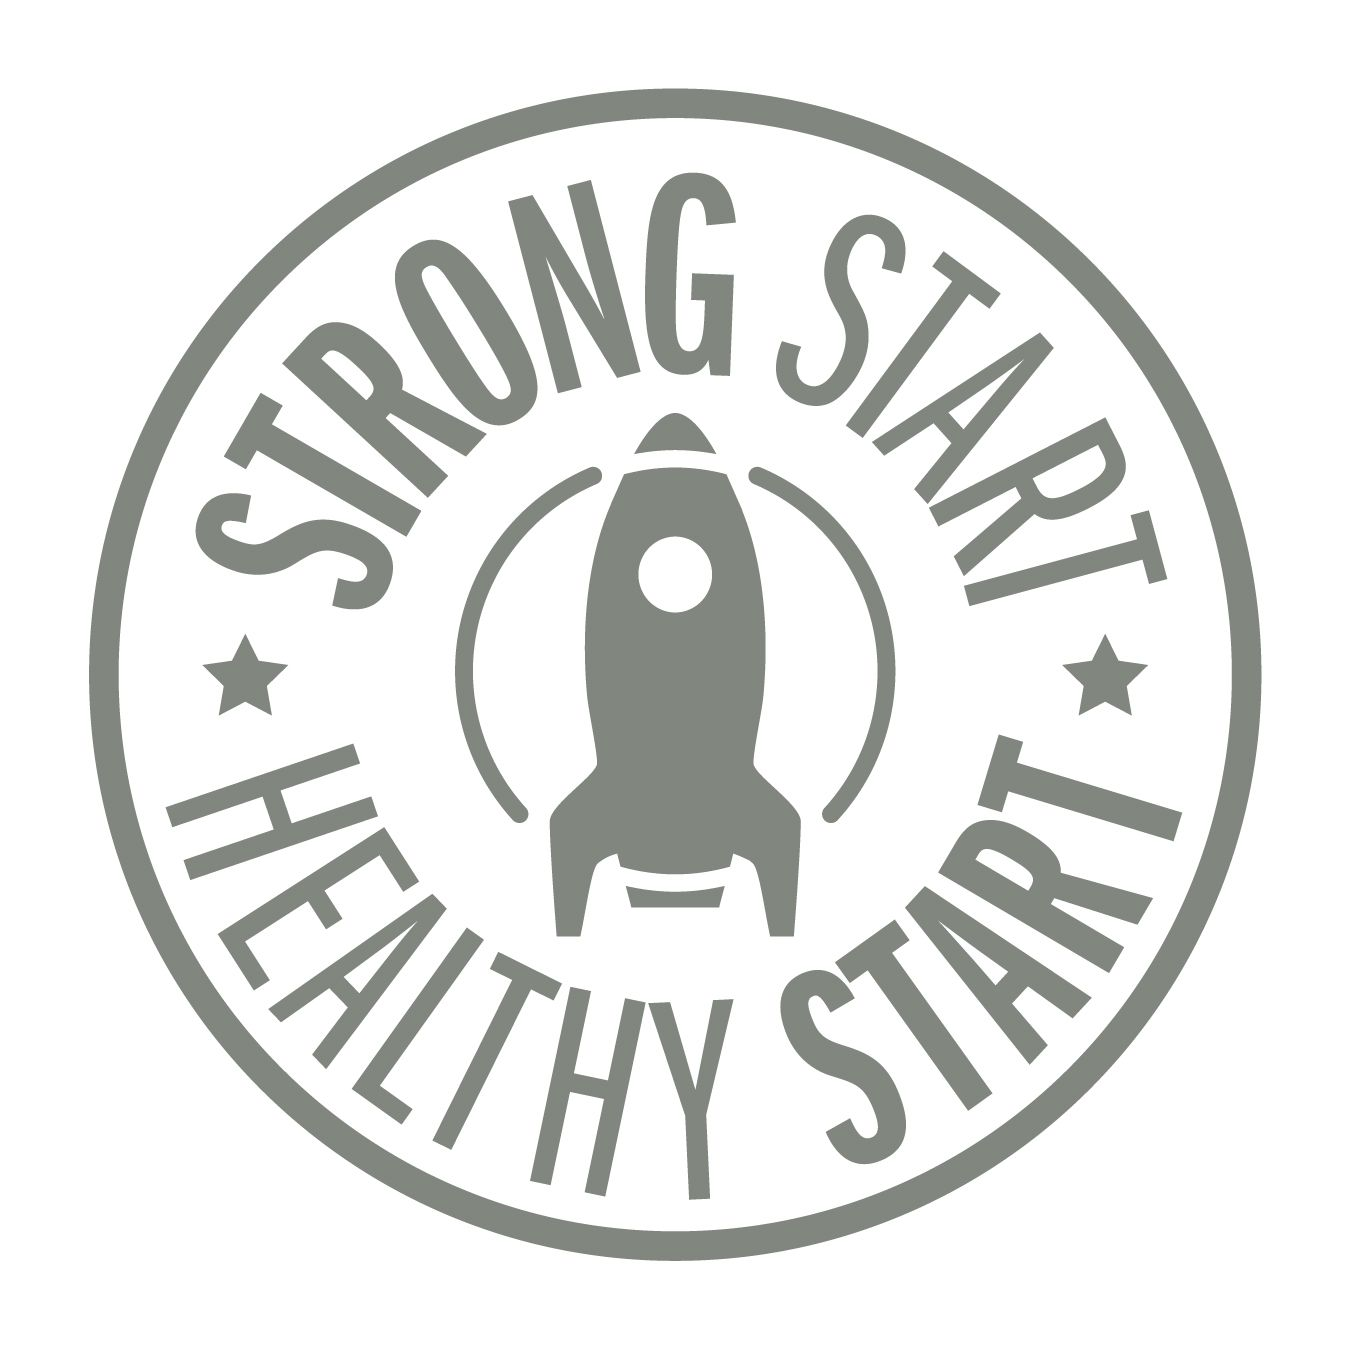 Ingham County Health Department Strong Start Healthy Start Logo